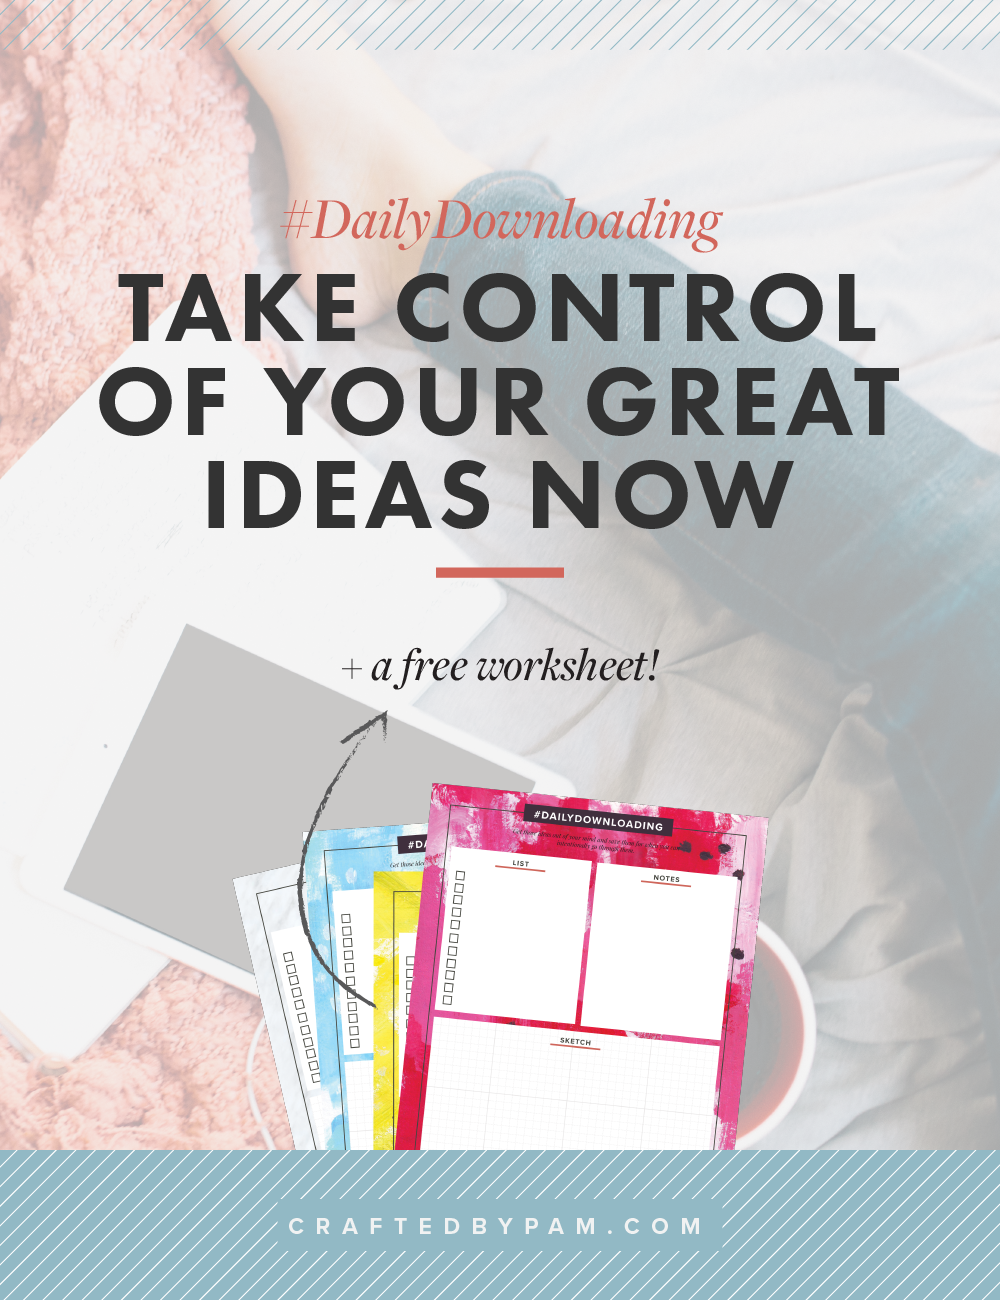 #DailyDownloading: a five-minute habit to regain control of your ideas (+ FREE worksheet!) | Crafted by Pam